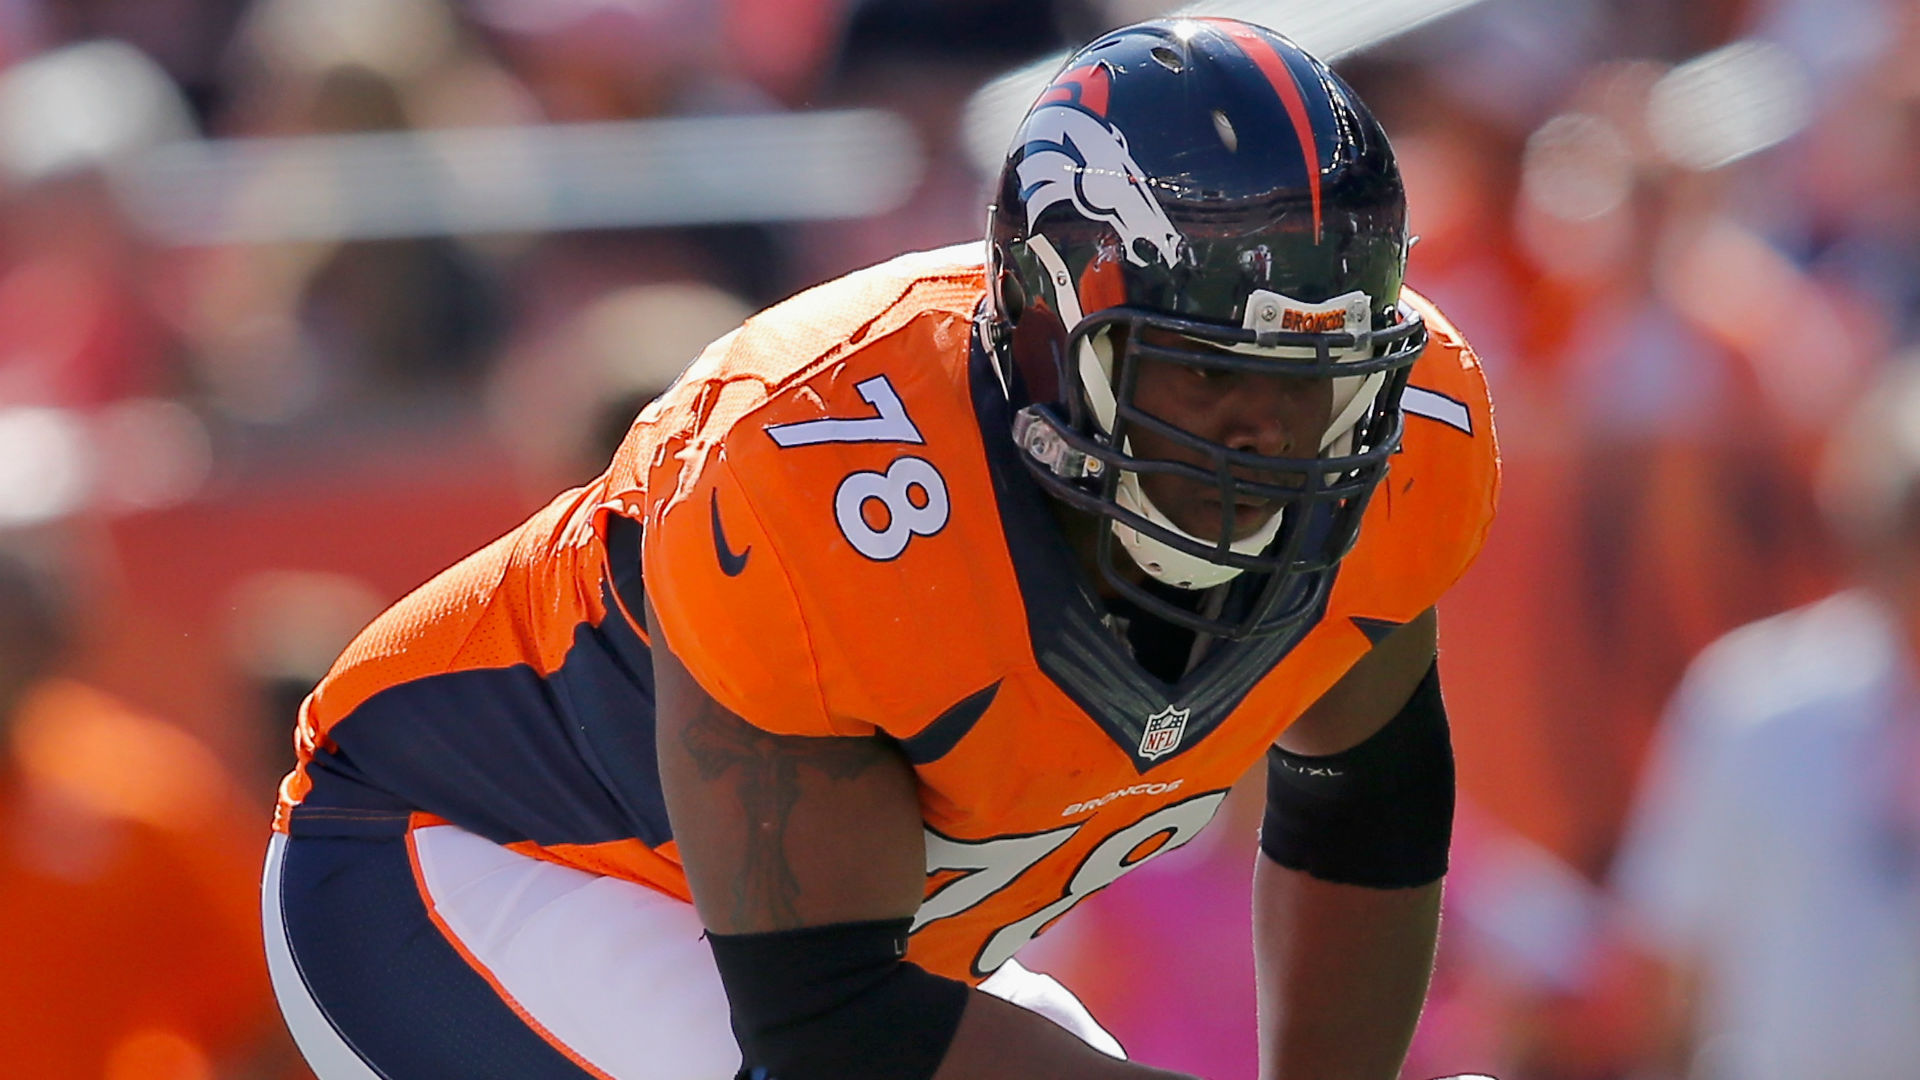 Former Pro Bowl OT Ryan Clady announces retirement from NFL